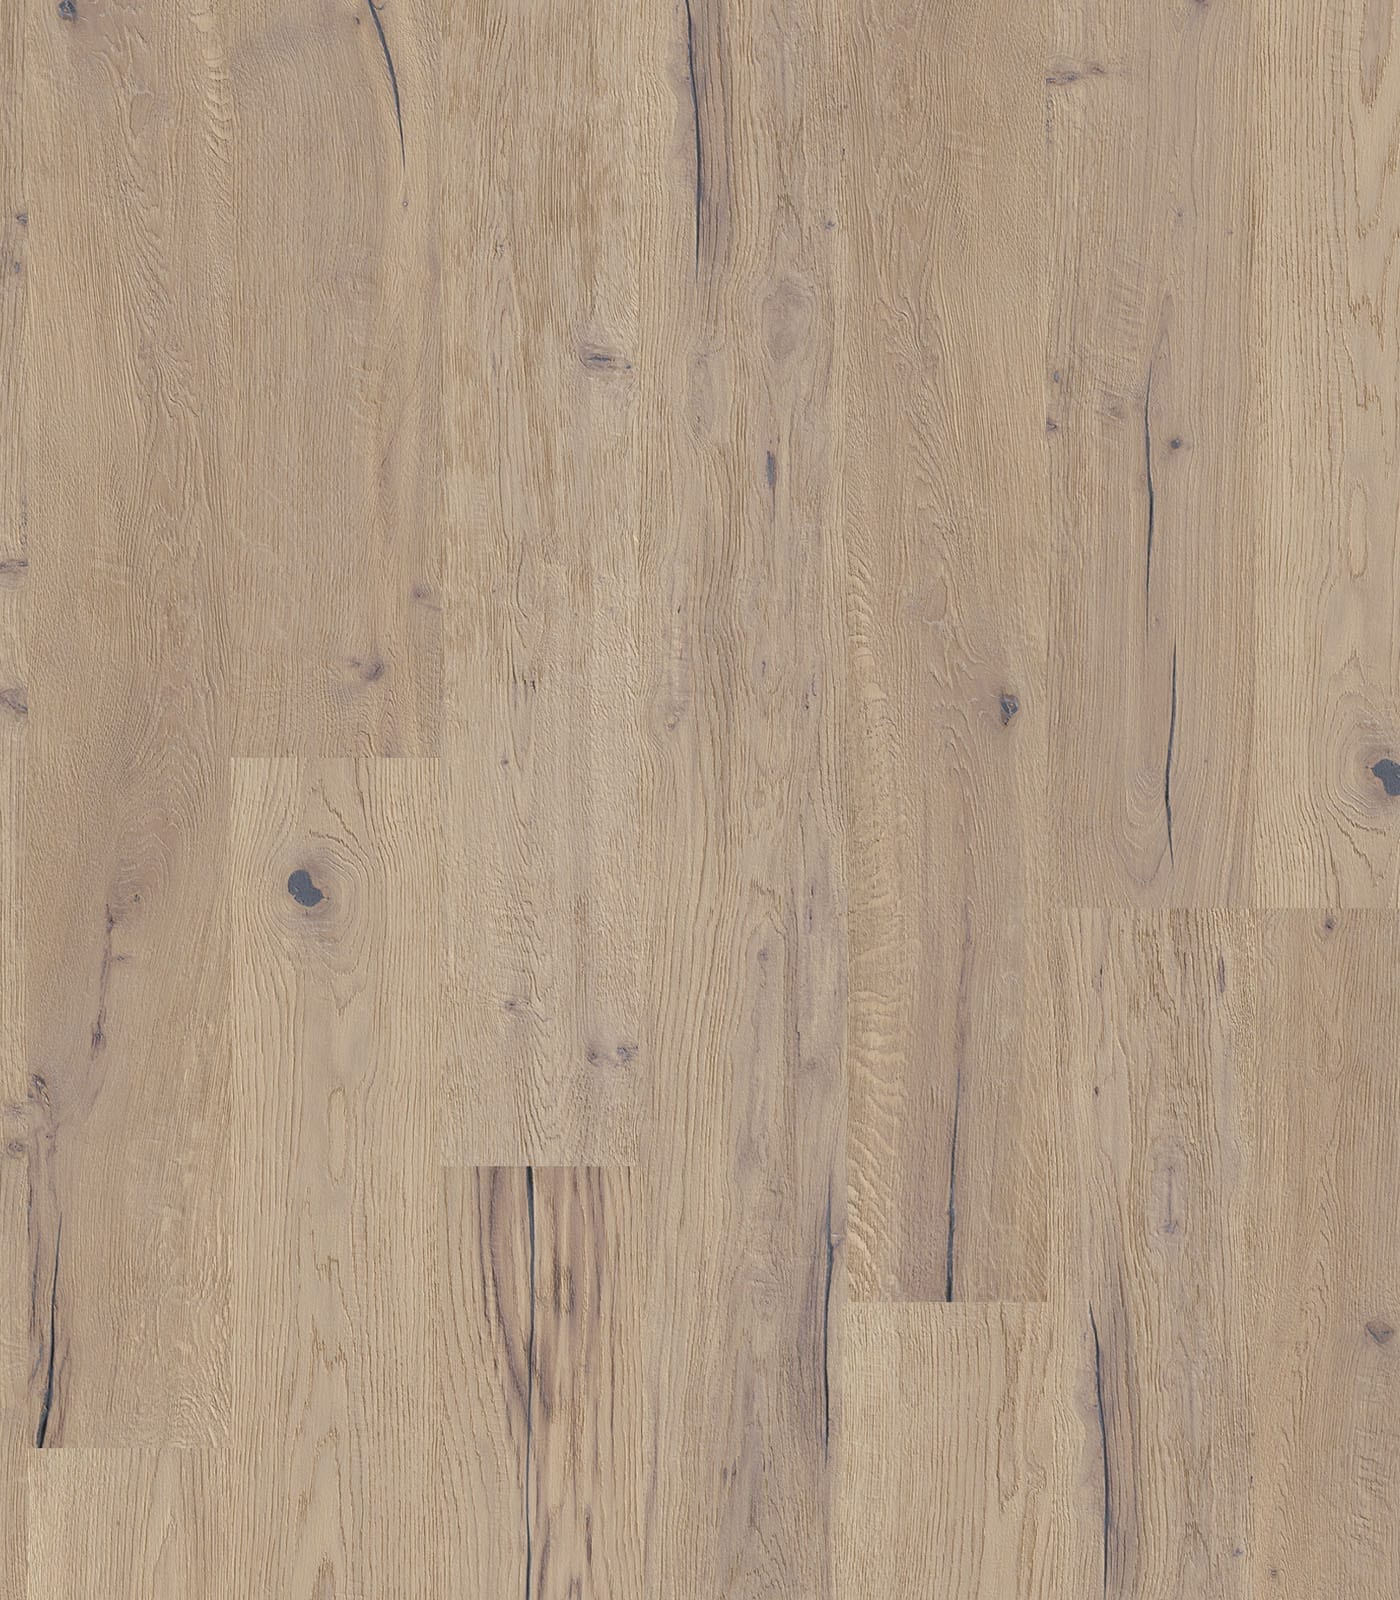 Ural Antique Collection European Oak Floors-flat